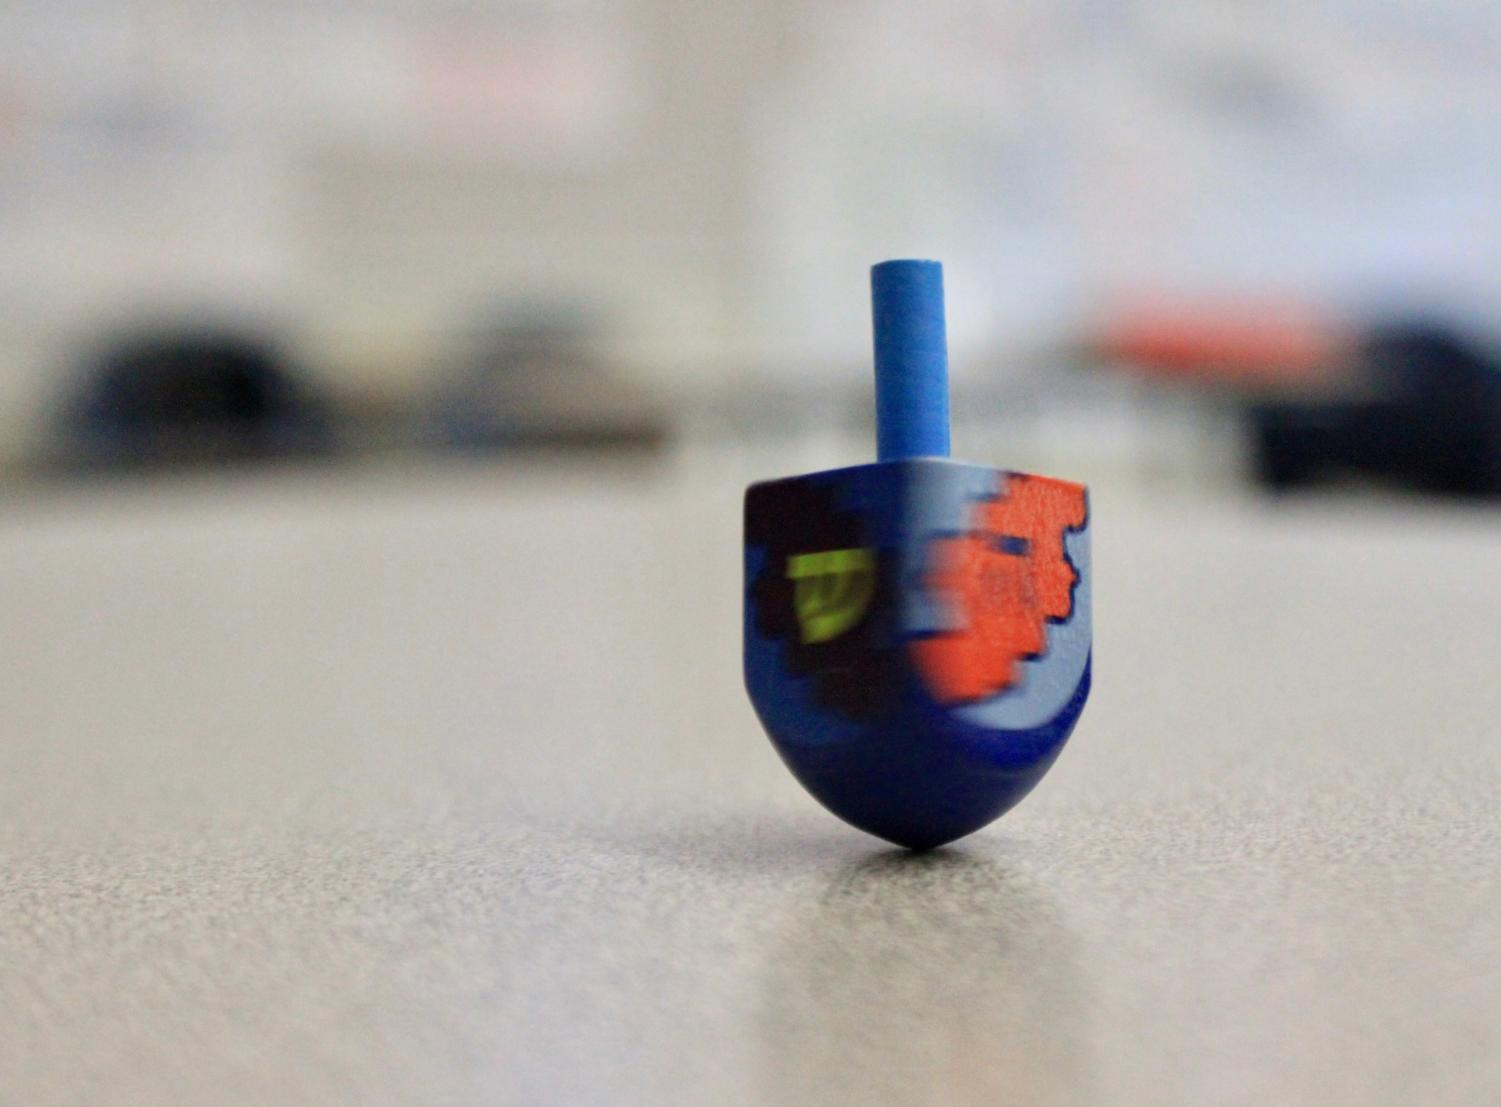 A dreidel spins on a desk in C14.